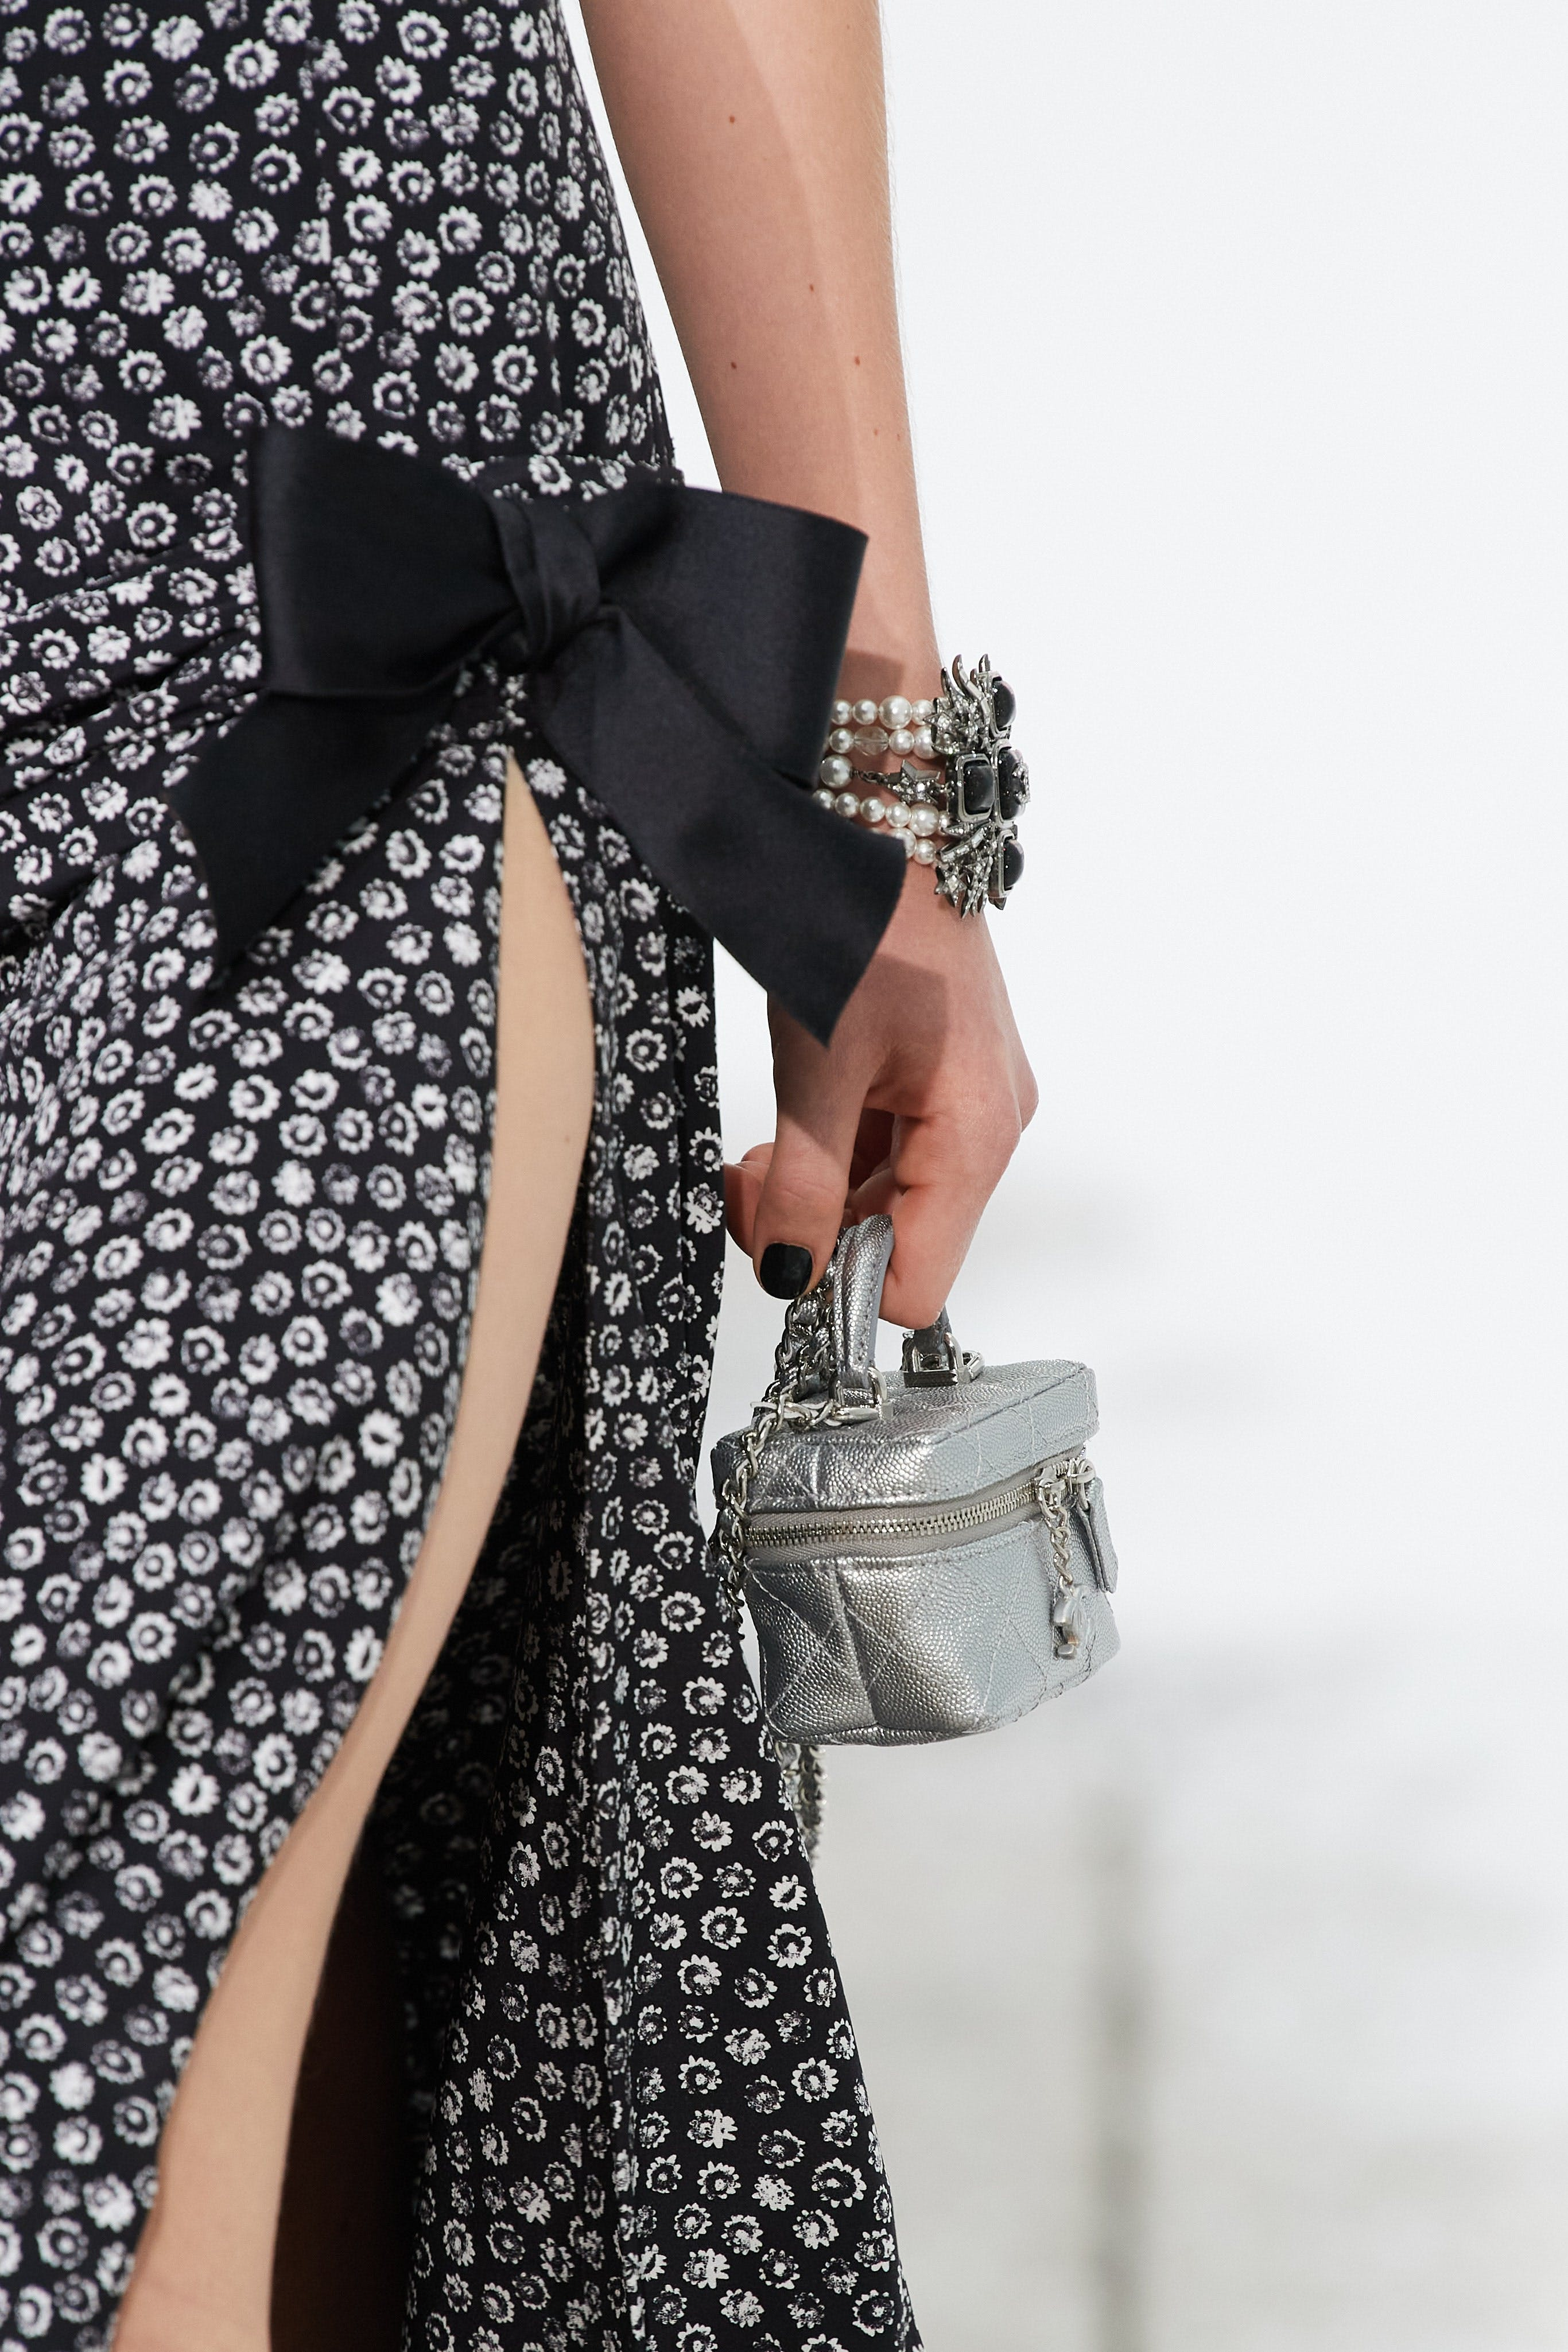 CHANEL SPRING 2021 RTW DETAILS